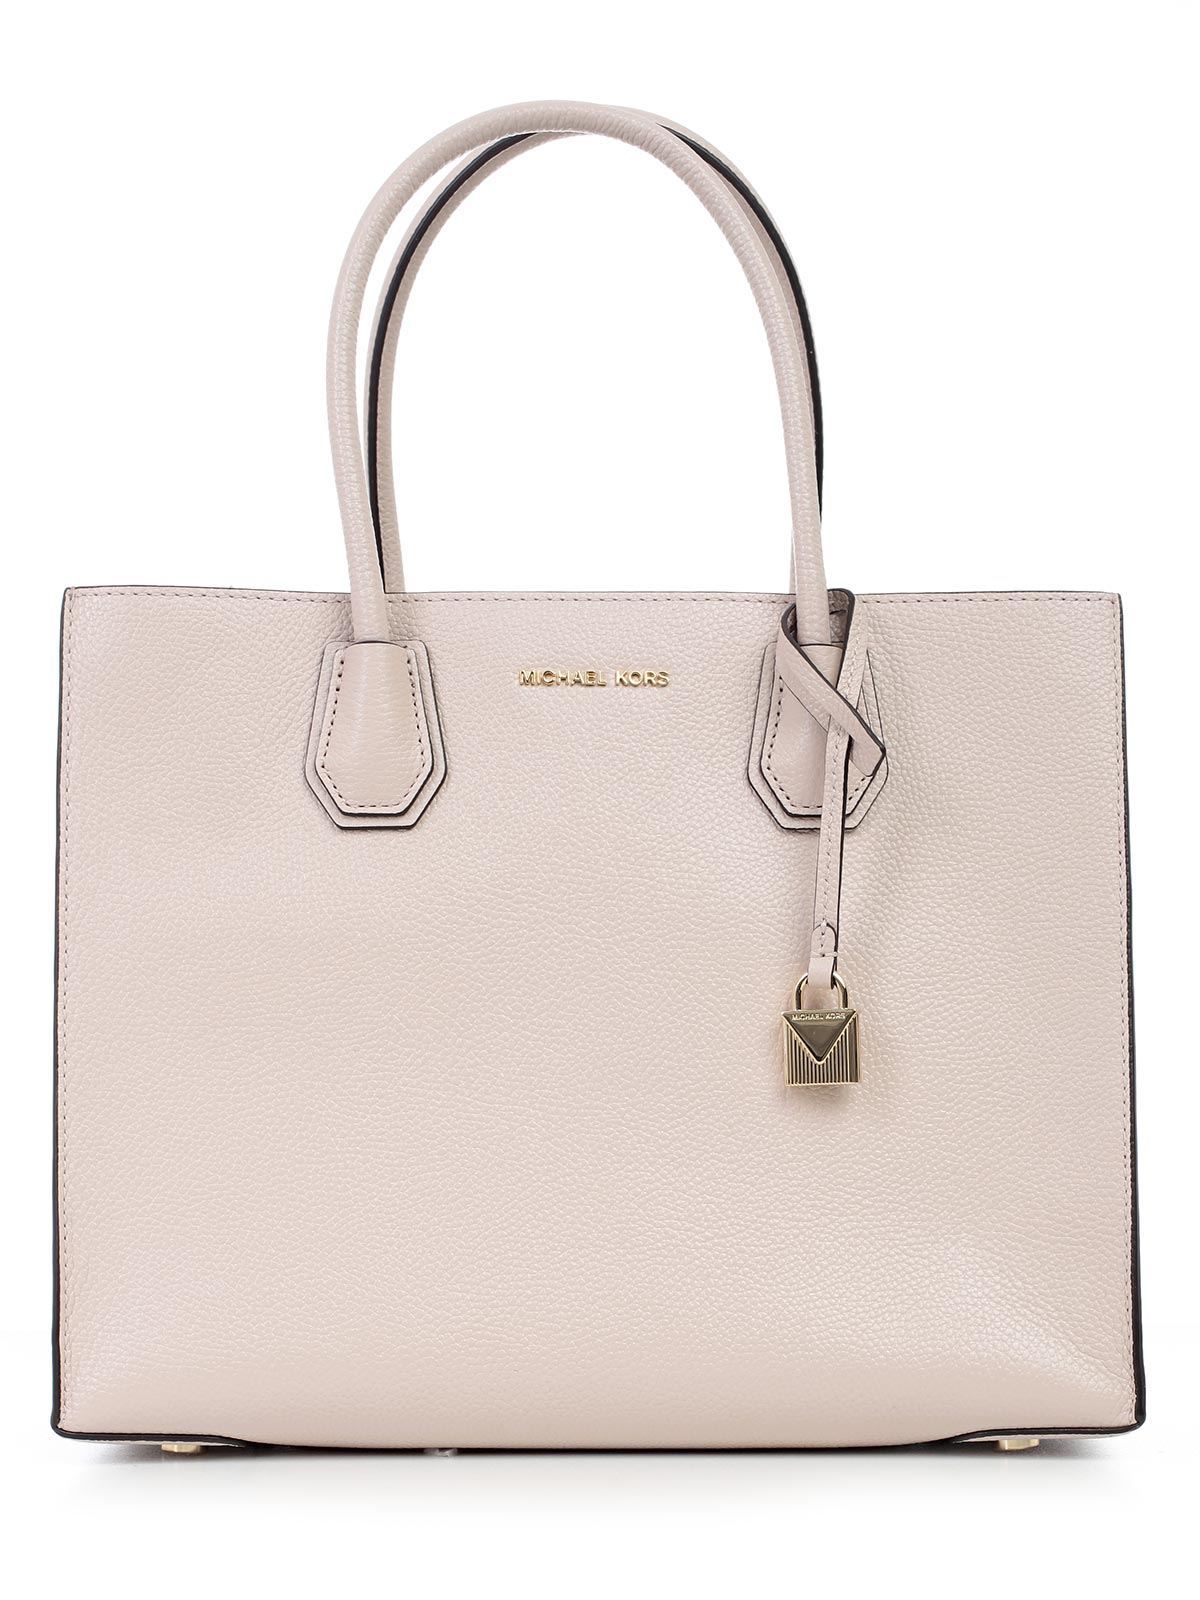 LARGER MERCER TOTE BAG